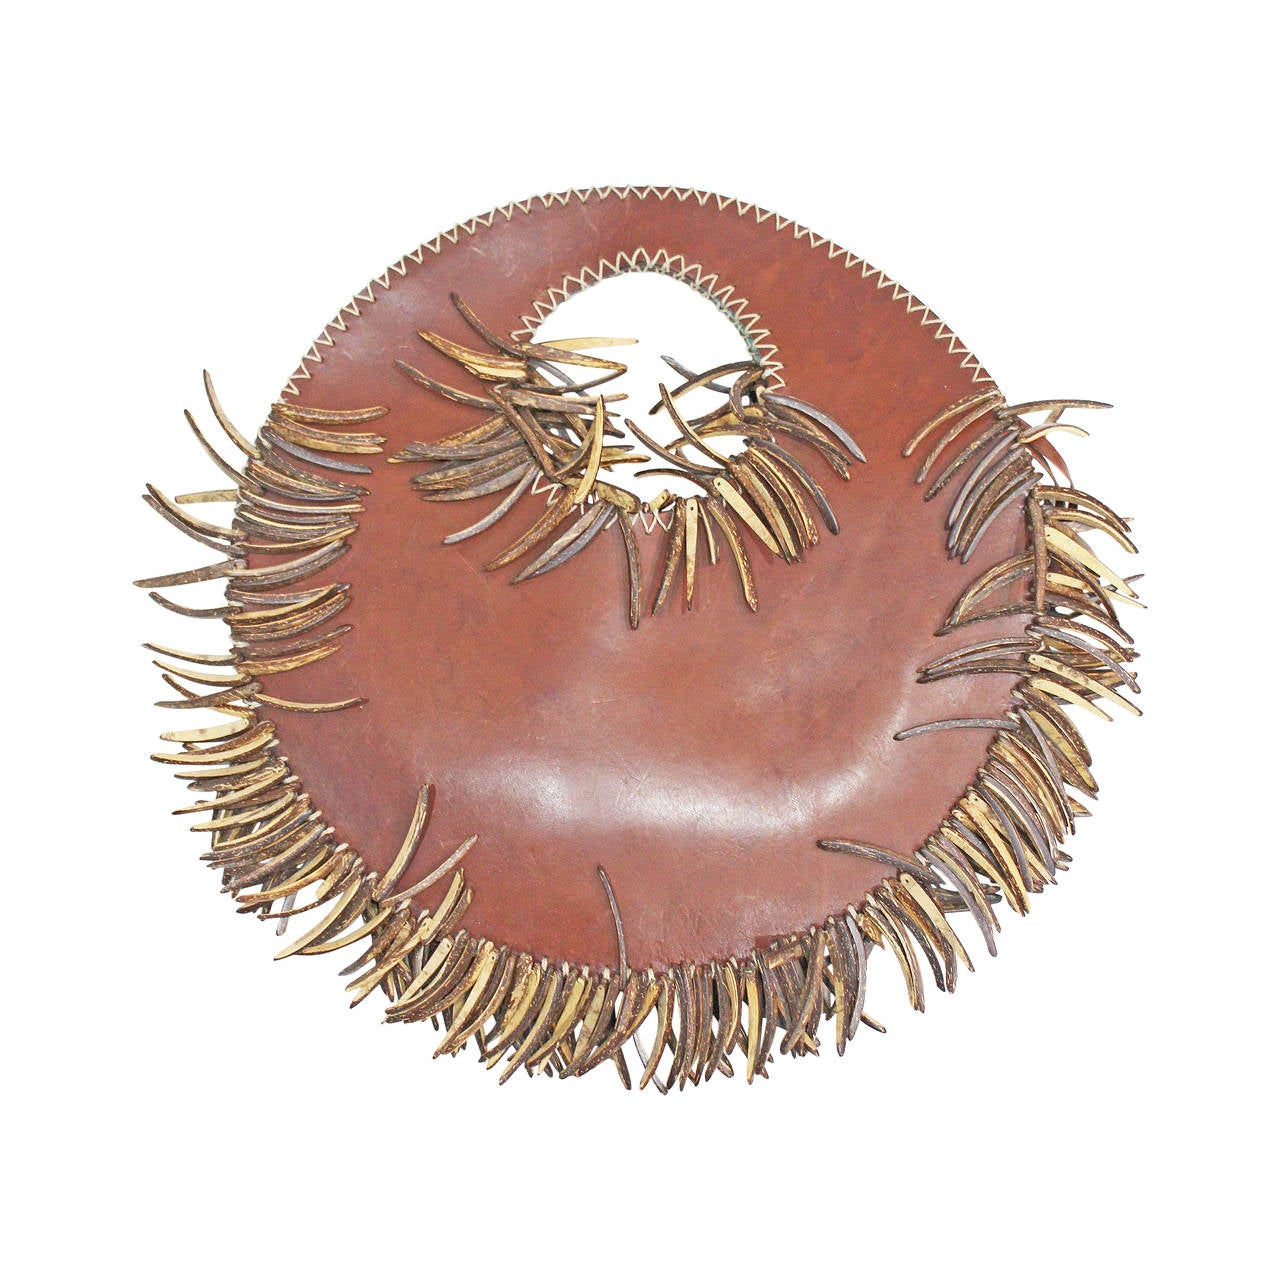 1990s Couture wood and leather circular handbag by Denise Razzouk 1